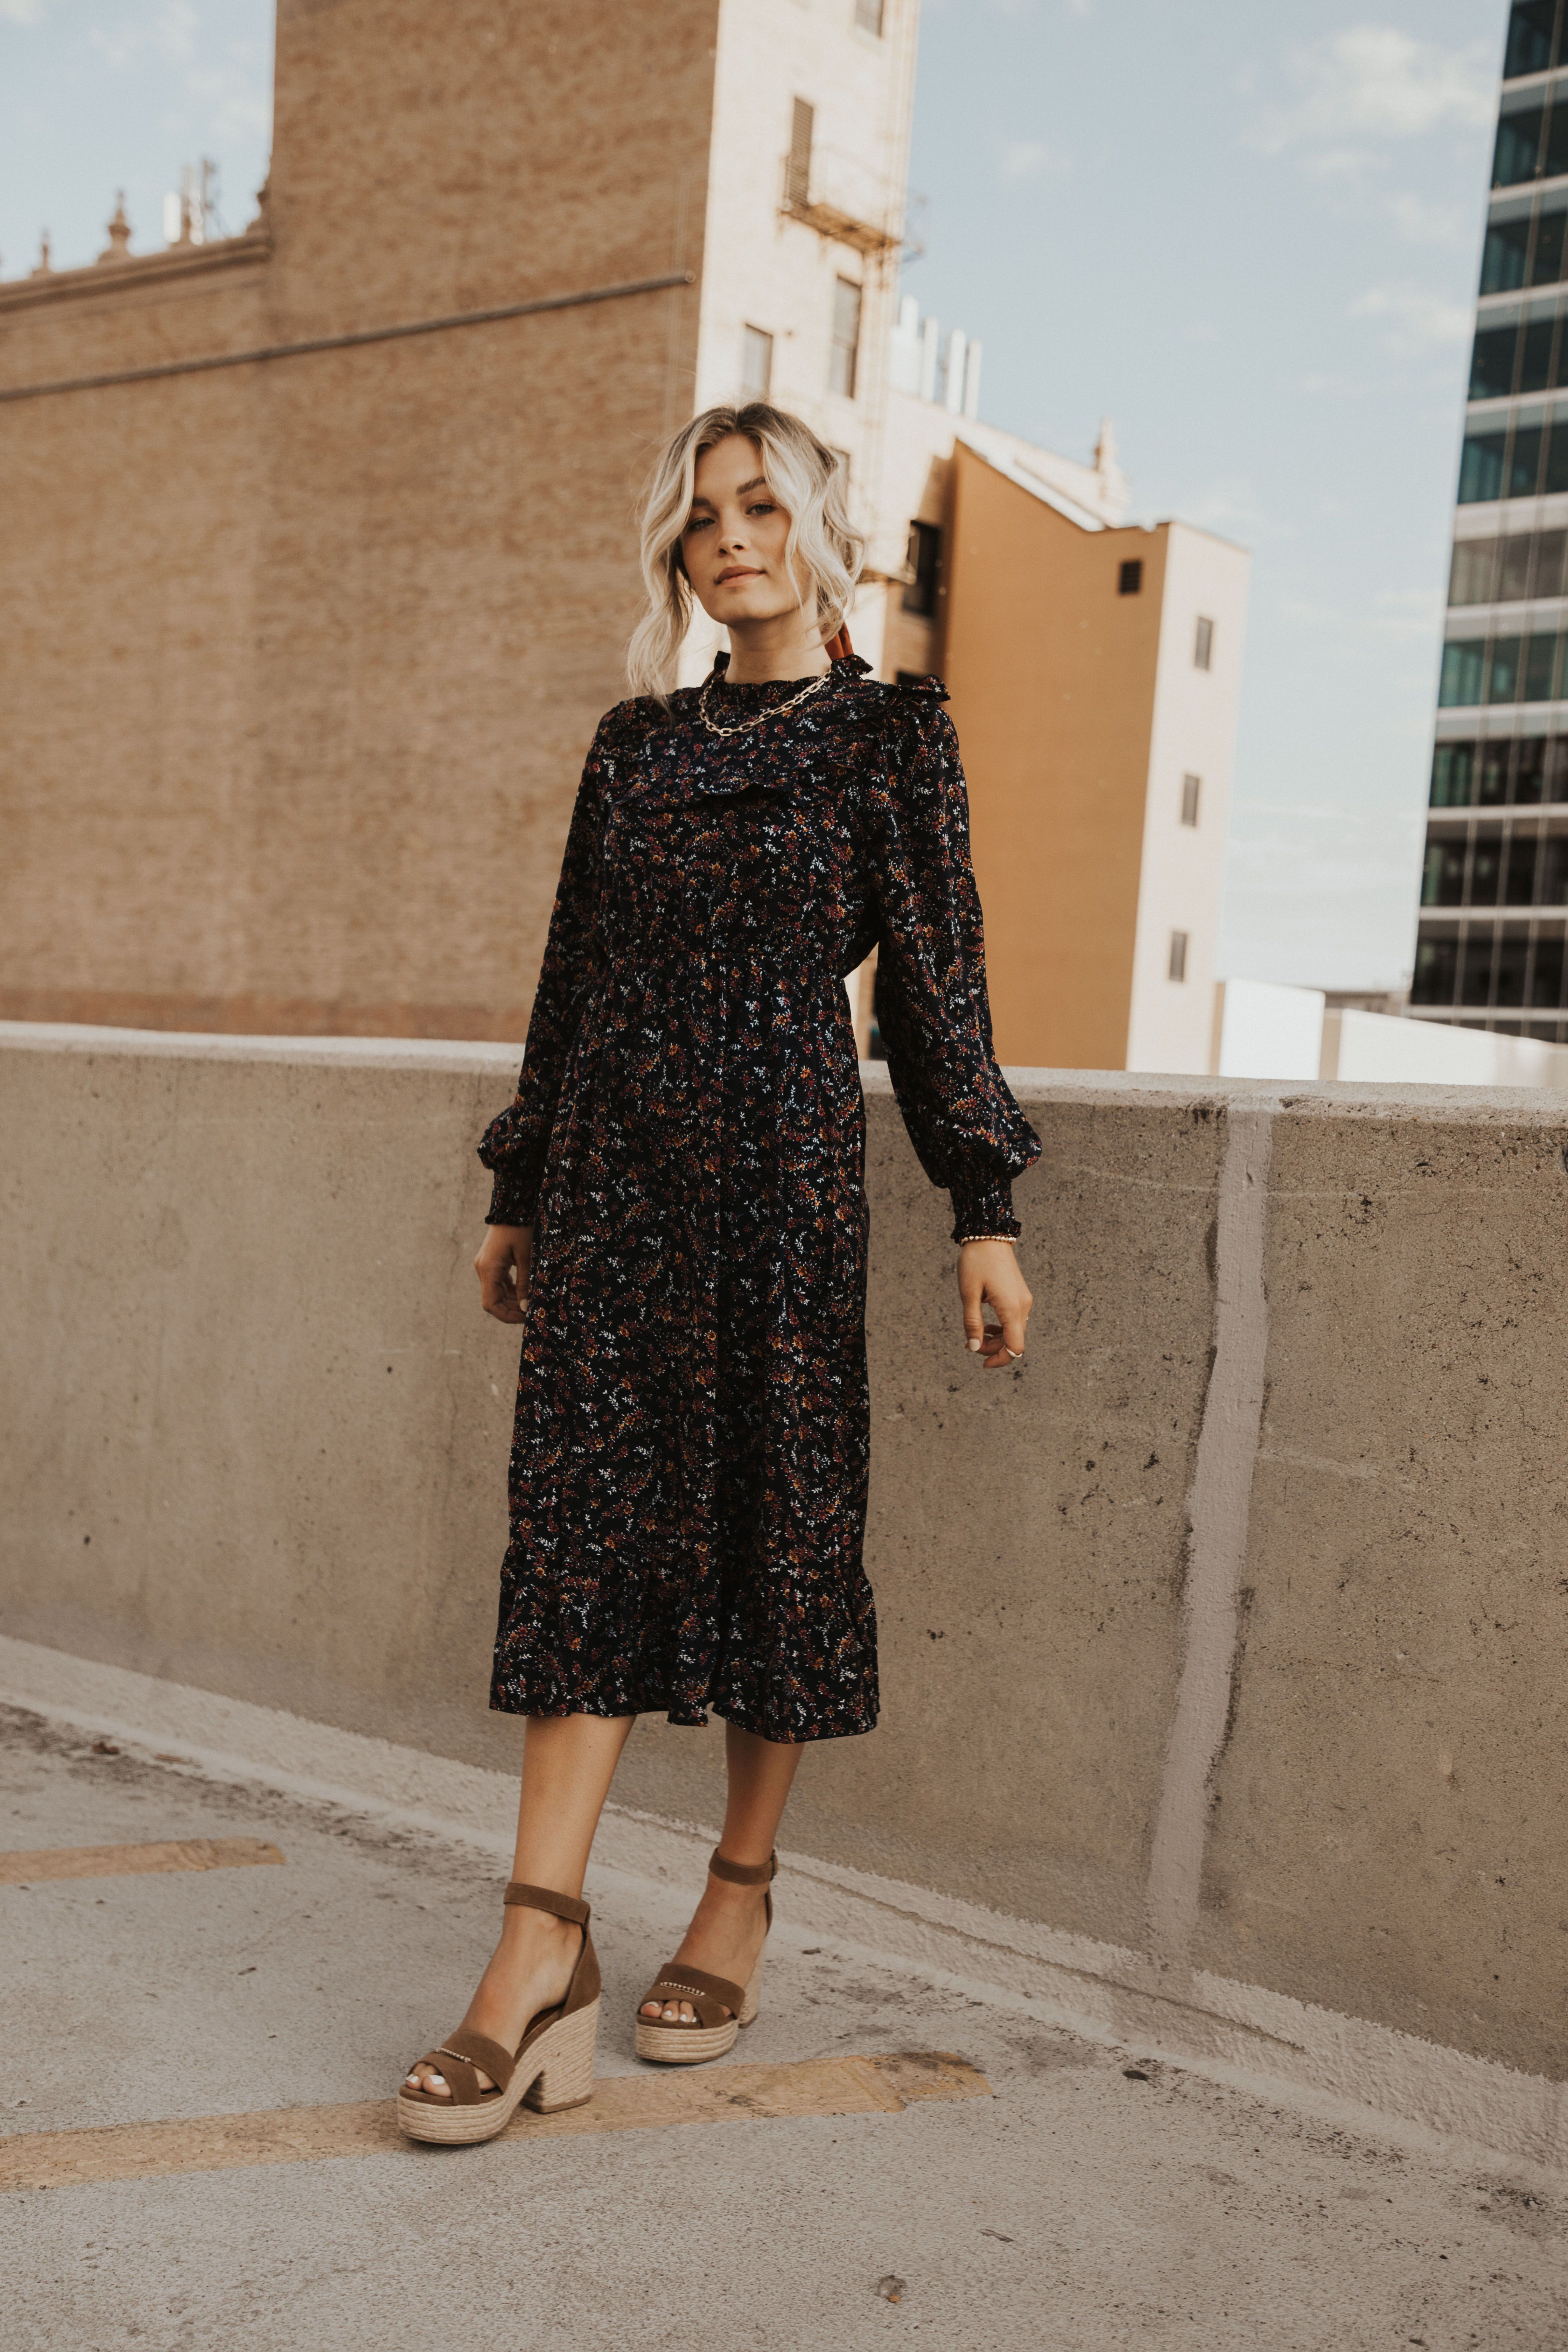 High Neck Floral Midi Dress Fashion Fashion Outfits Everyday Outfit Inspiration [ 6720 x 4480 Pixel ]